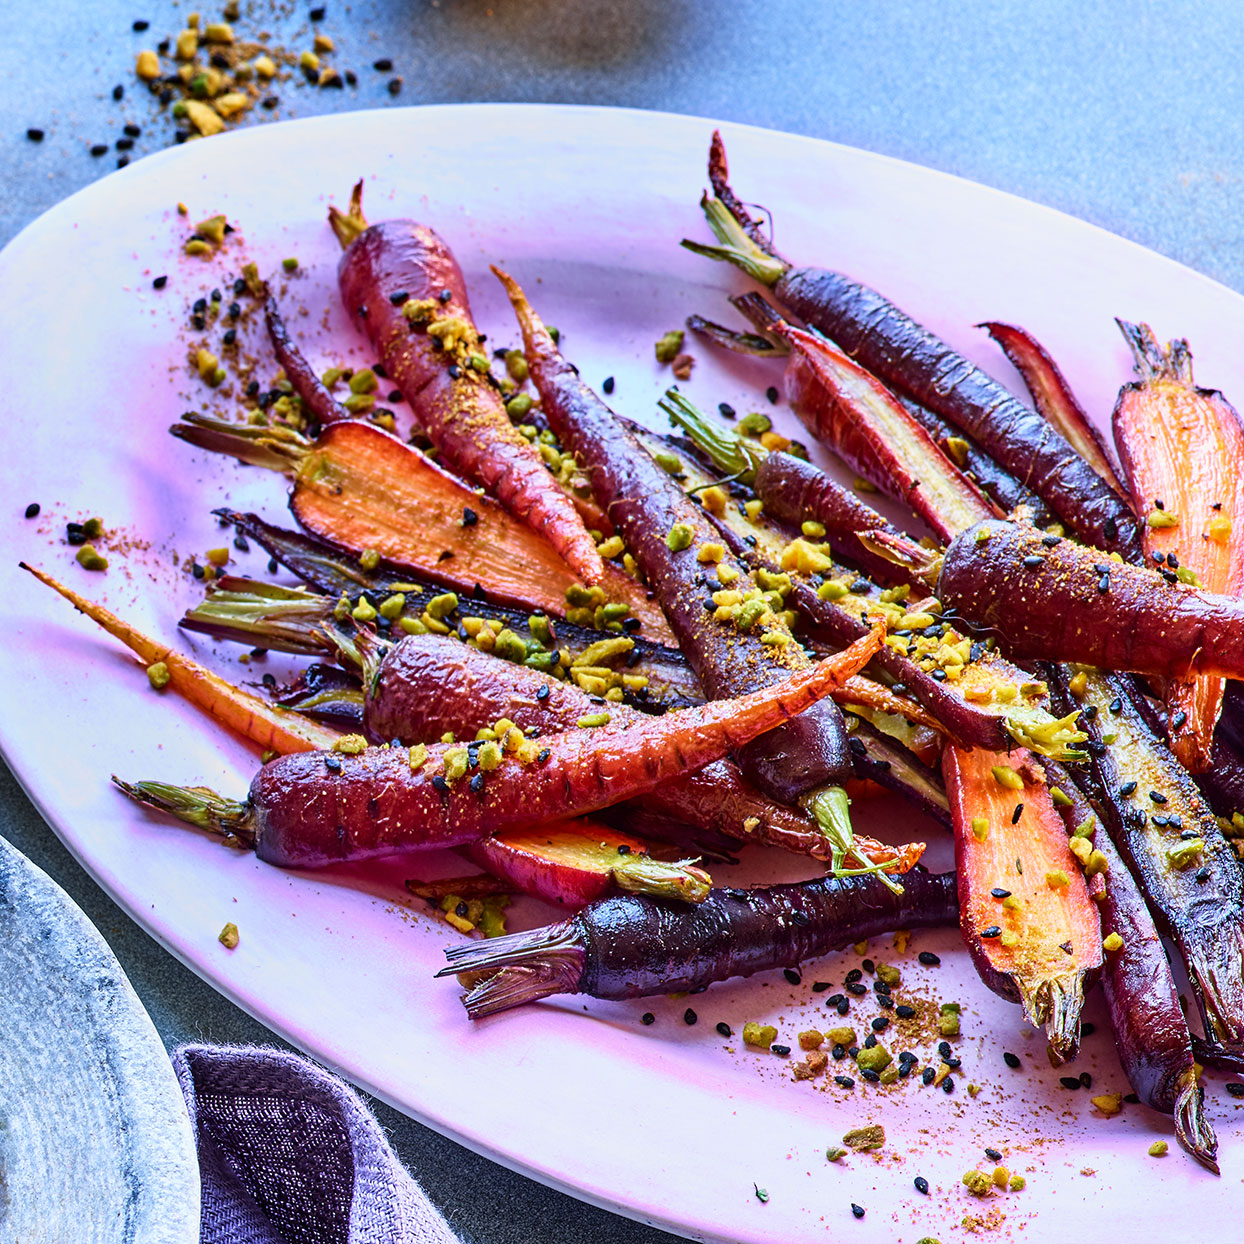 Roasted Purple Carrots with Black Sesame Dukkah Becky Duffett